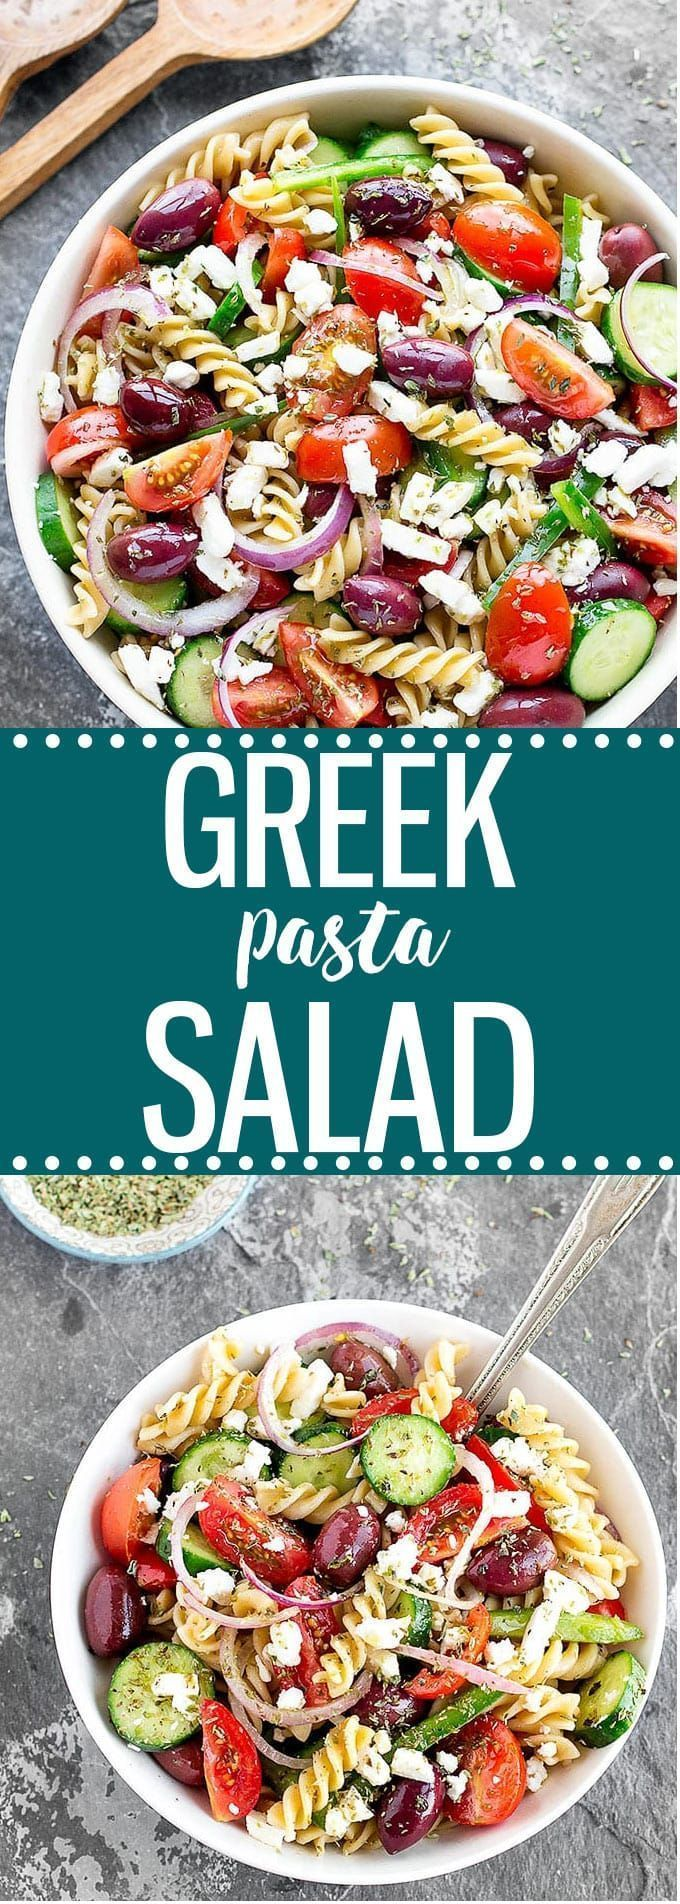 A super flavorful, colorful, and easy Greek pasta salad made with healthy, simple ingredients: creamy feta cheese, juicy tomatoes, crisp cucumber, crunchy green bell pepper, pungent red onion, and tangy Kalamata olives. Perfect for picnics and barbecues